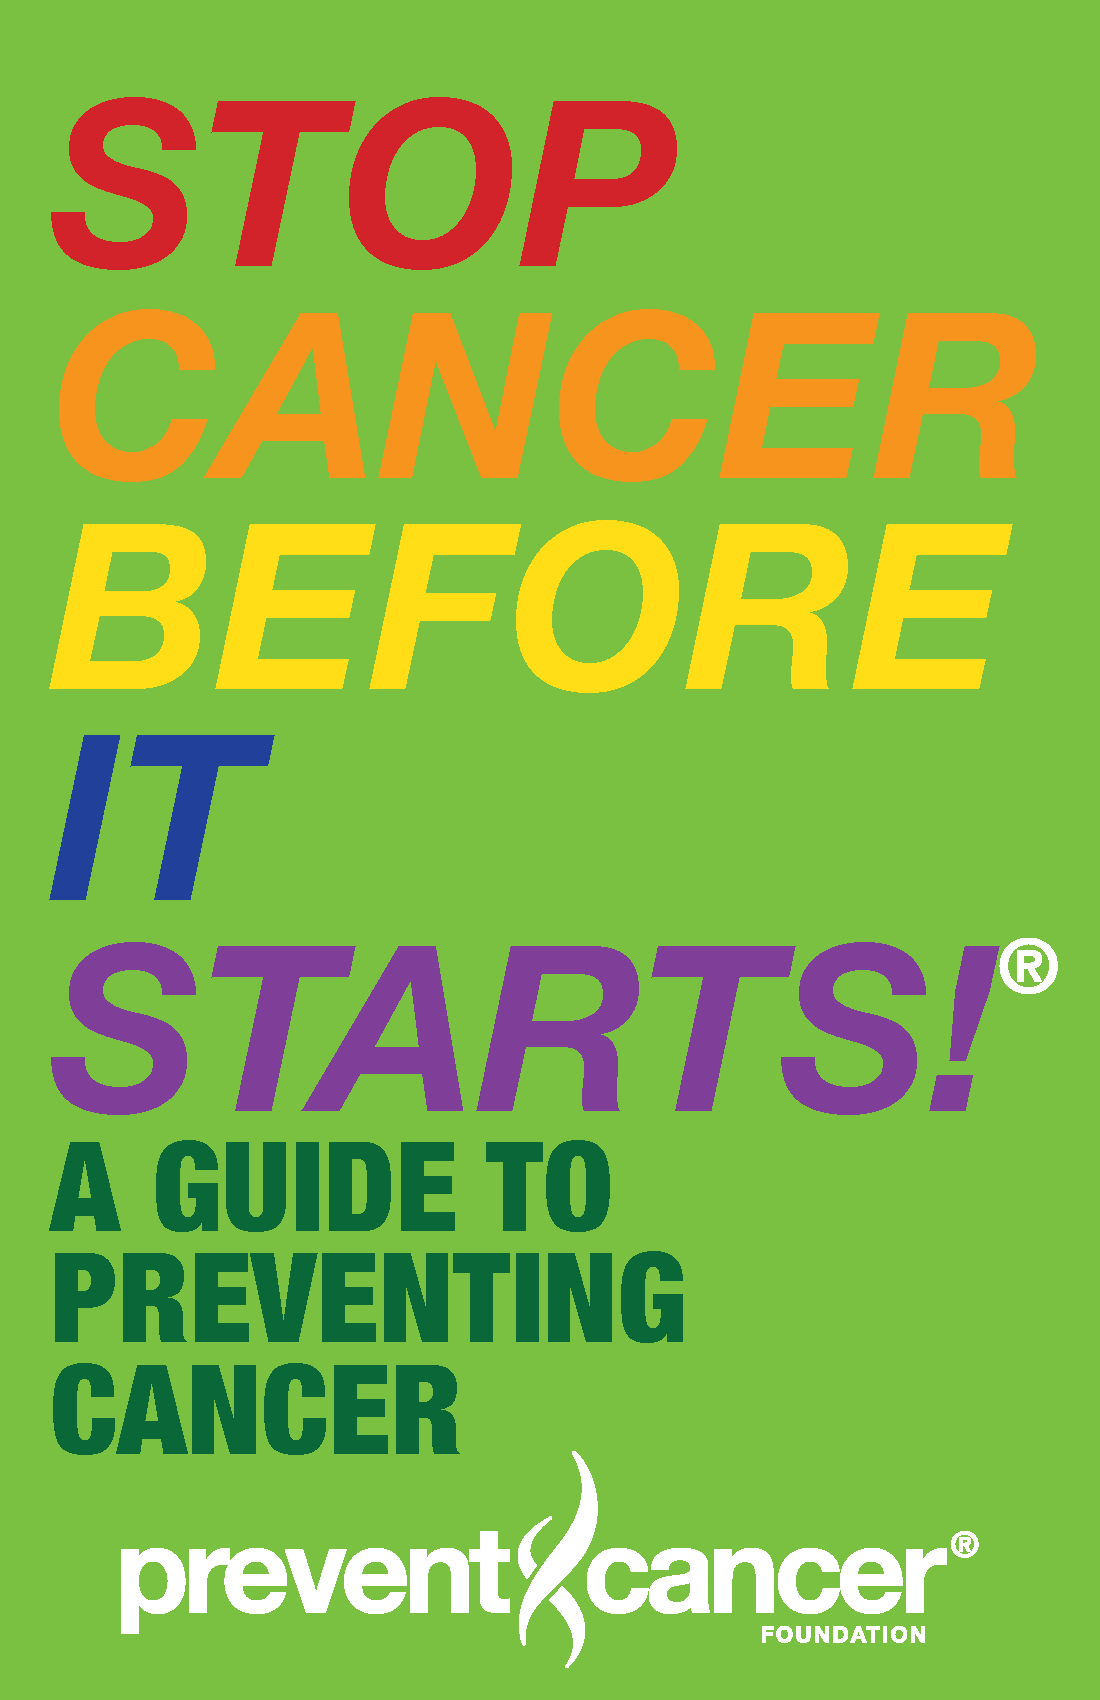 Stop Cancer Before it Starts! A Guide to Preventing Cancer